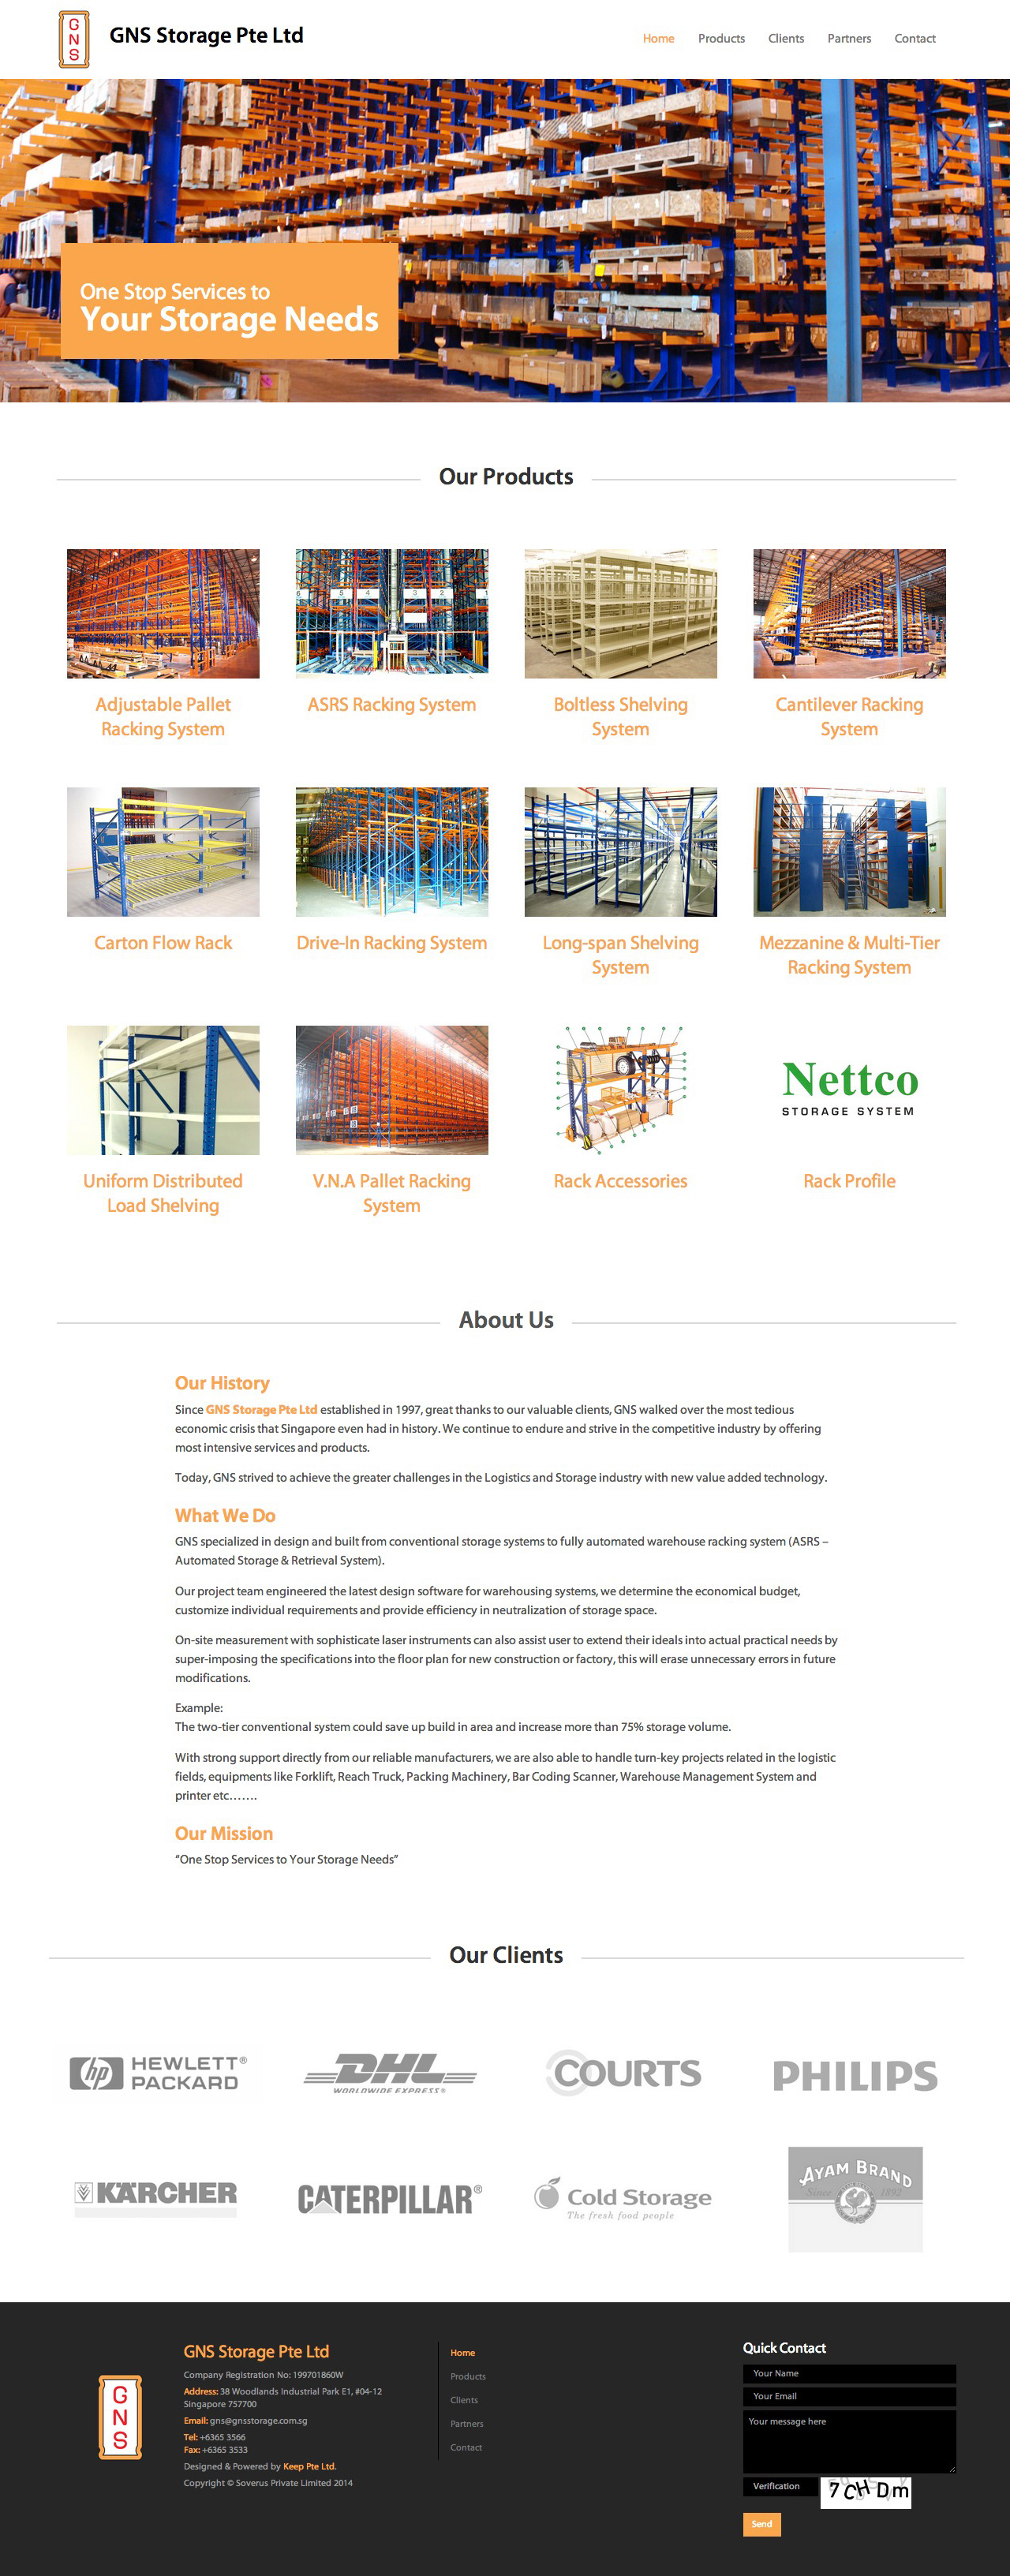 GNS Storage Pte Ltd website home page